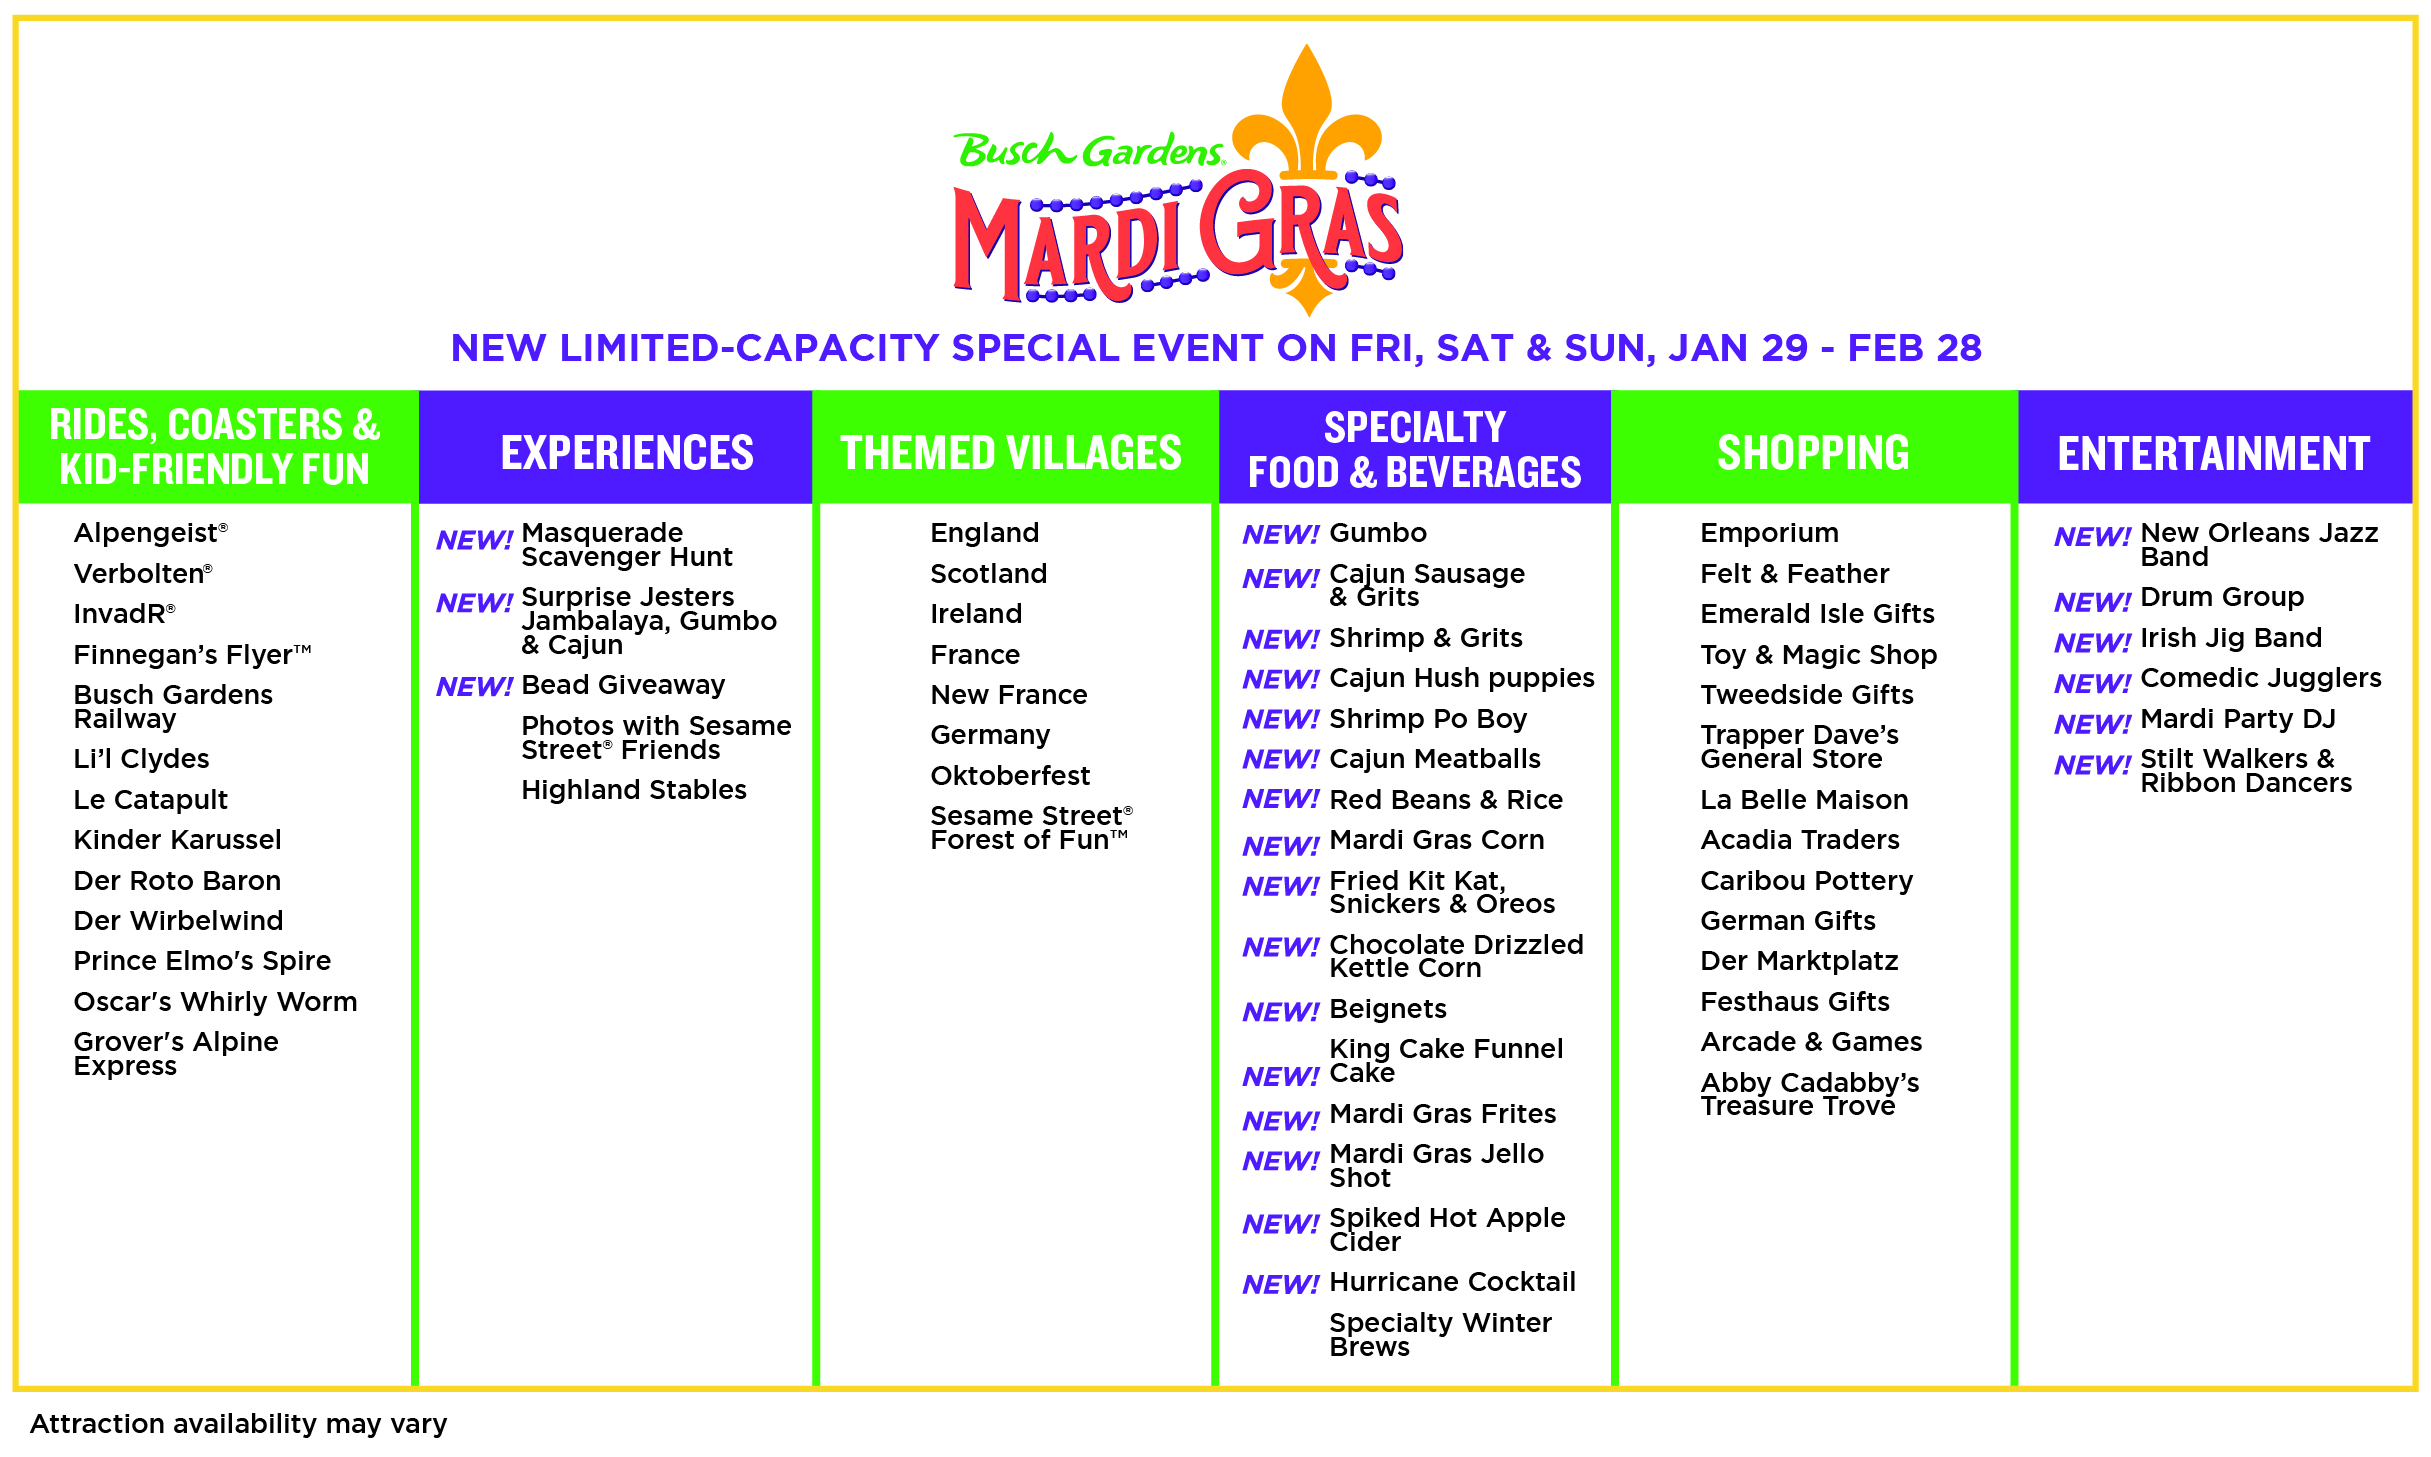 Mardi Gras Chart_Final. Enjoy the new Busch Gardens Williamsburg 2021 special events that offer socially distanced fun and entertainment all year long. Busch Gardens will be the place for all things fun, new, and safe in 2021.